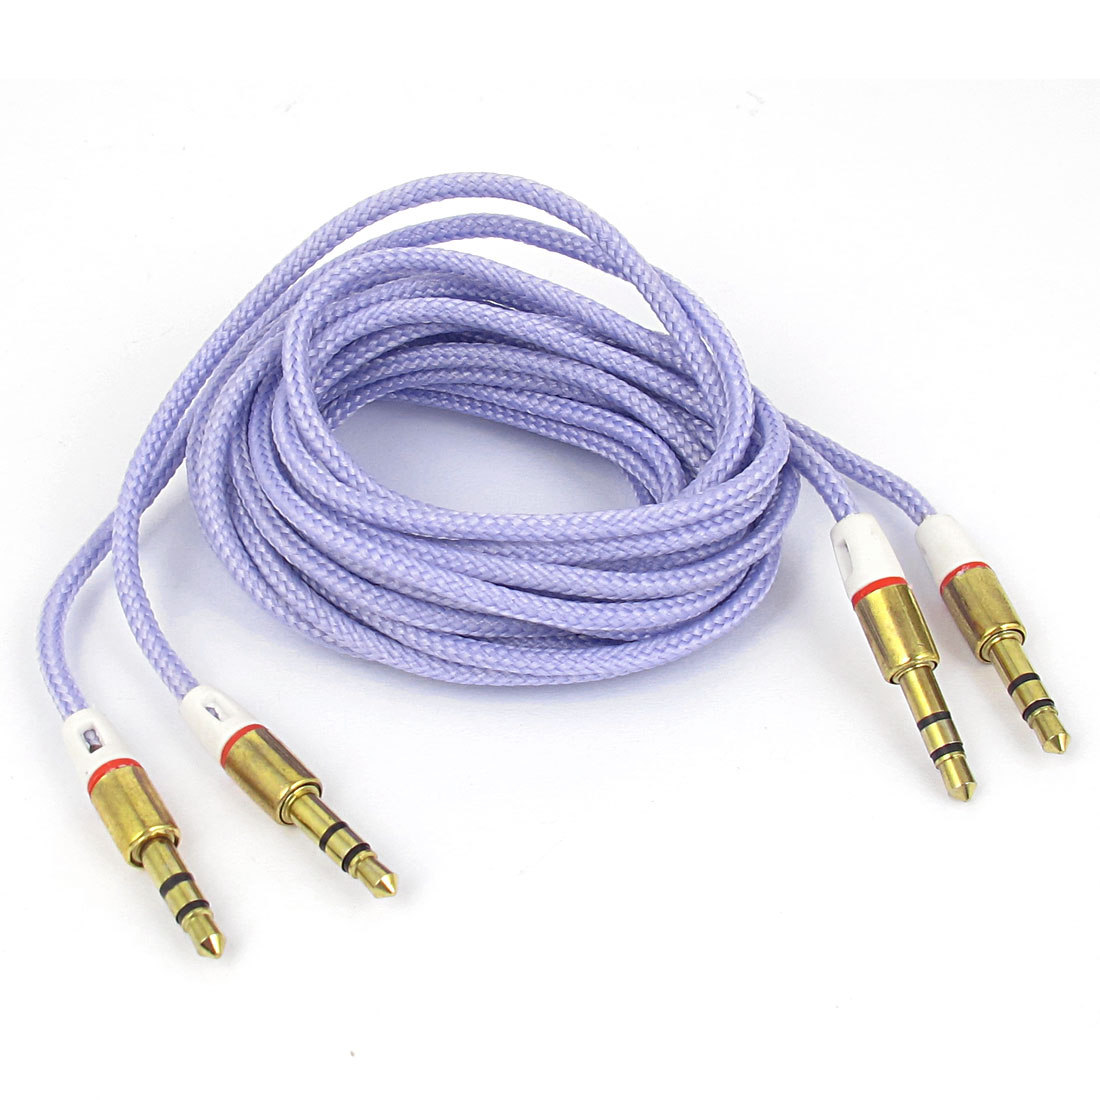 2 Pcs 3.5mm Male to Male Nylon Cover Jacketed Audio Stereo Cable 5Ft Purple